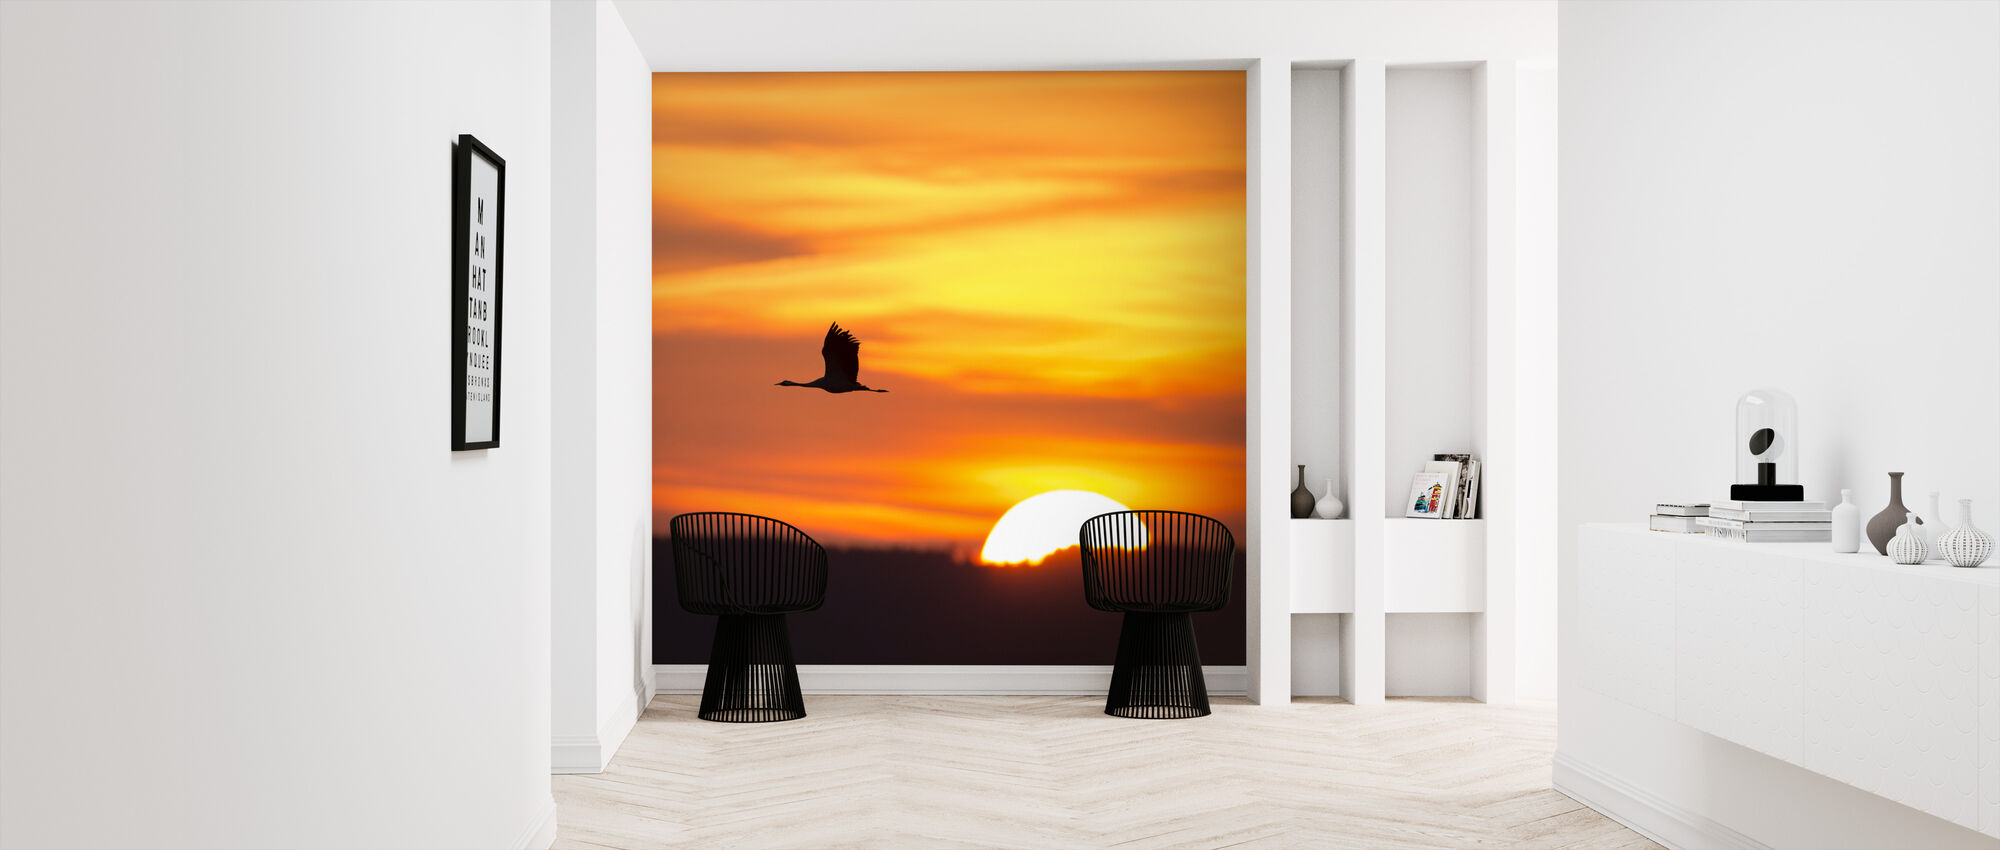 Crane and a Beautiful Sunrise - Wallpaper - Hallway